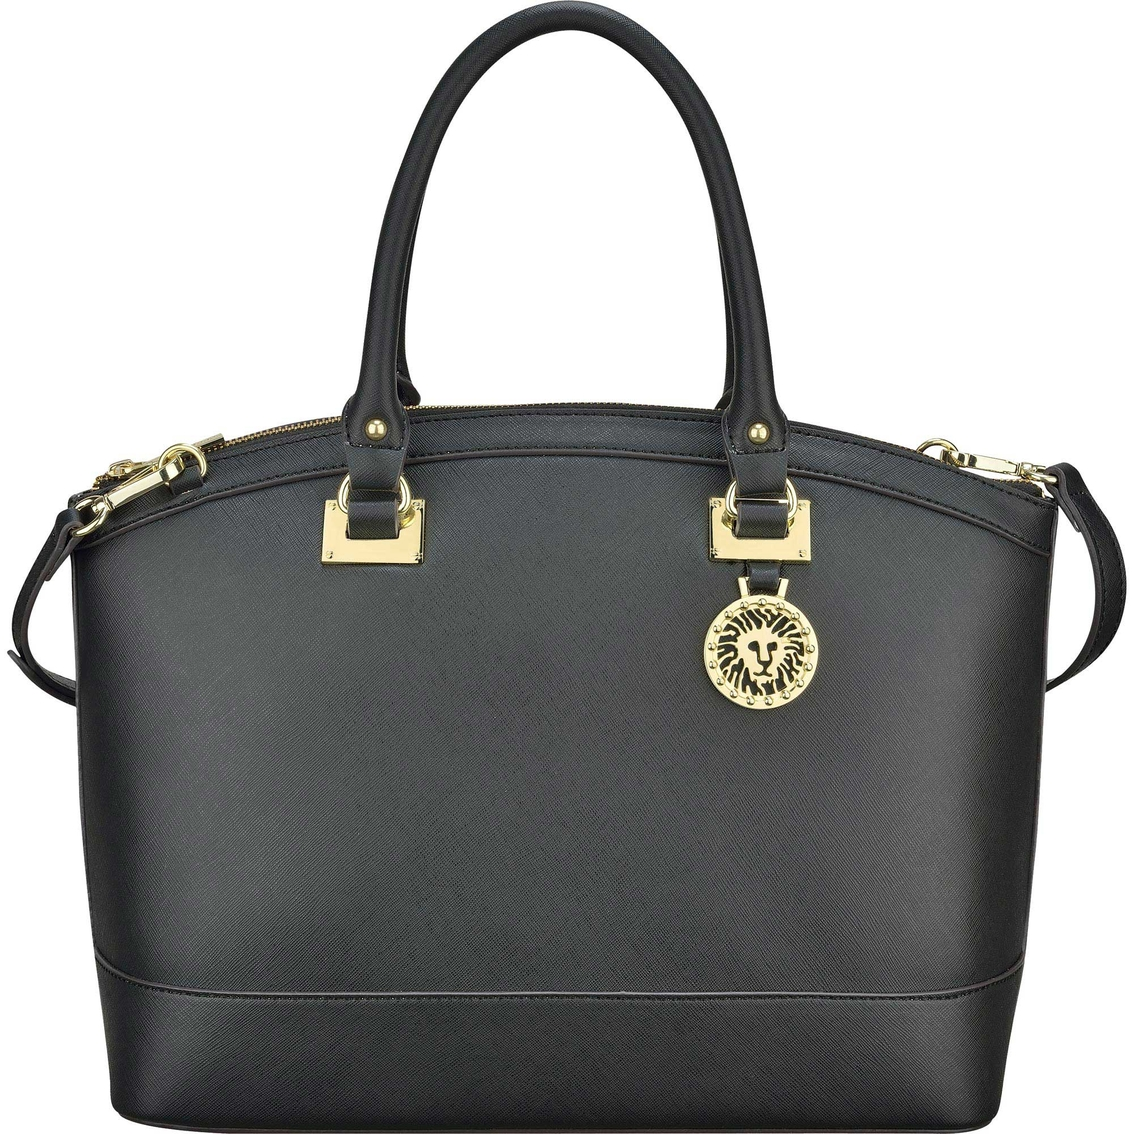 Image Result For School Handbags